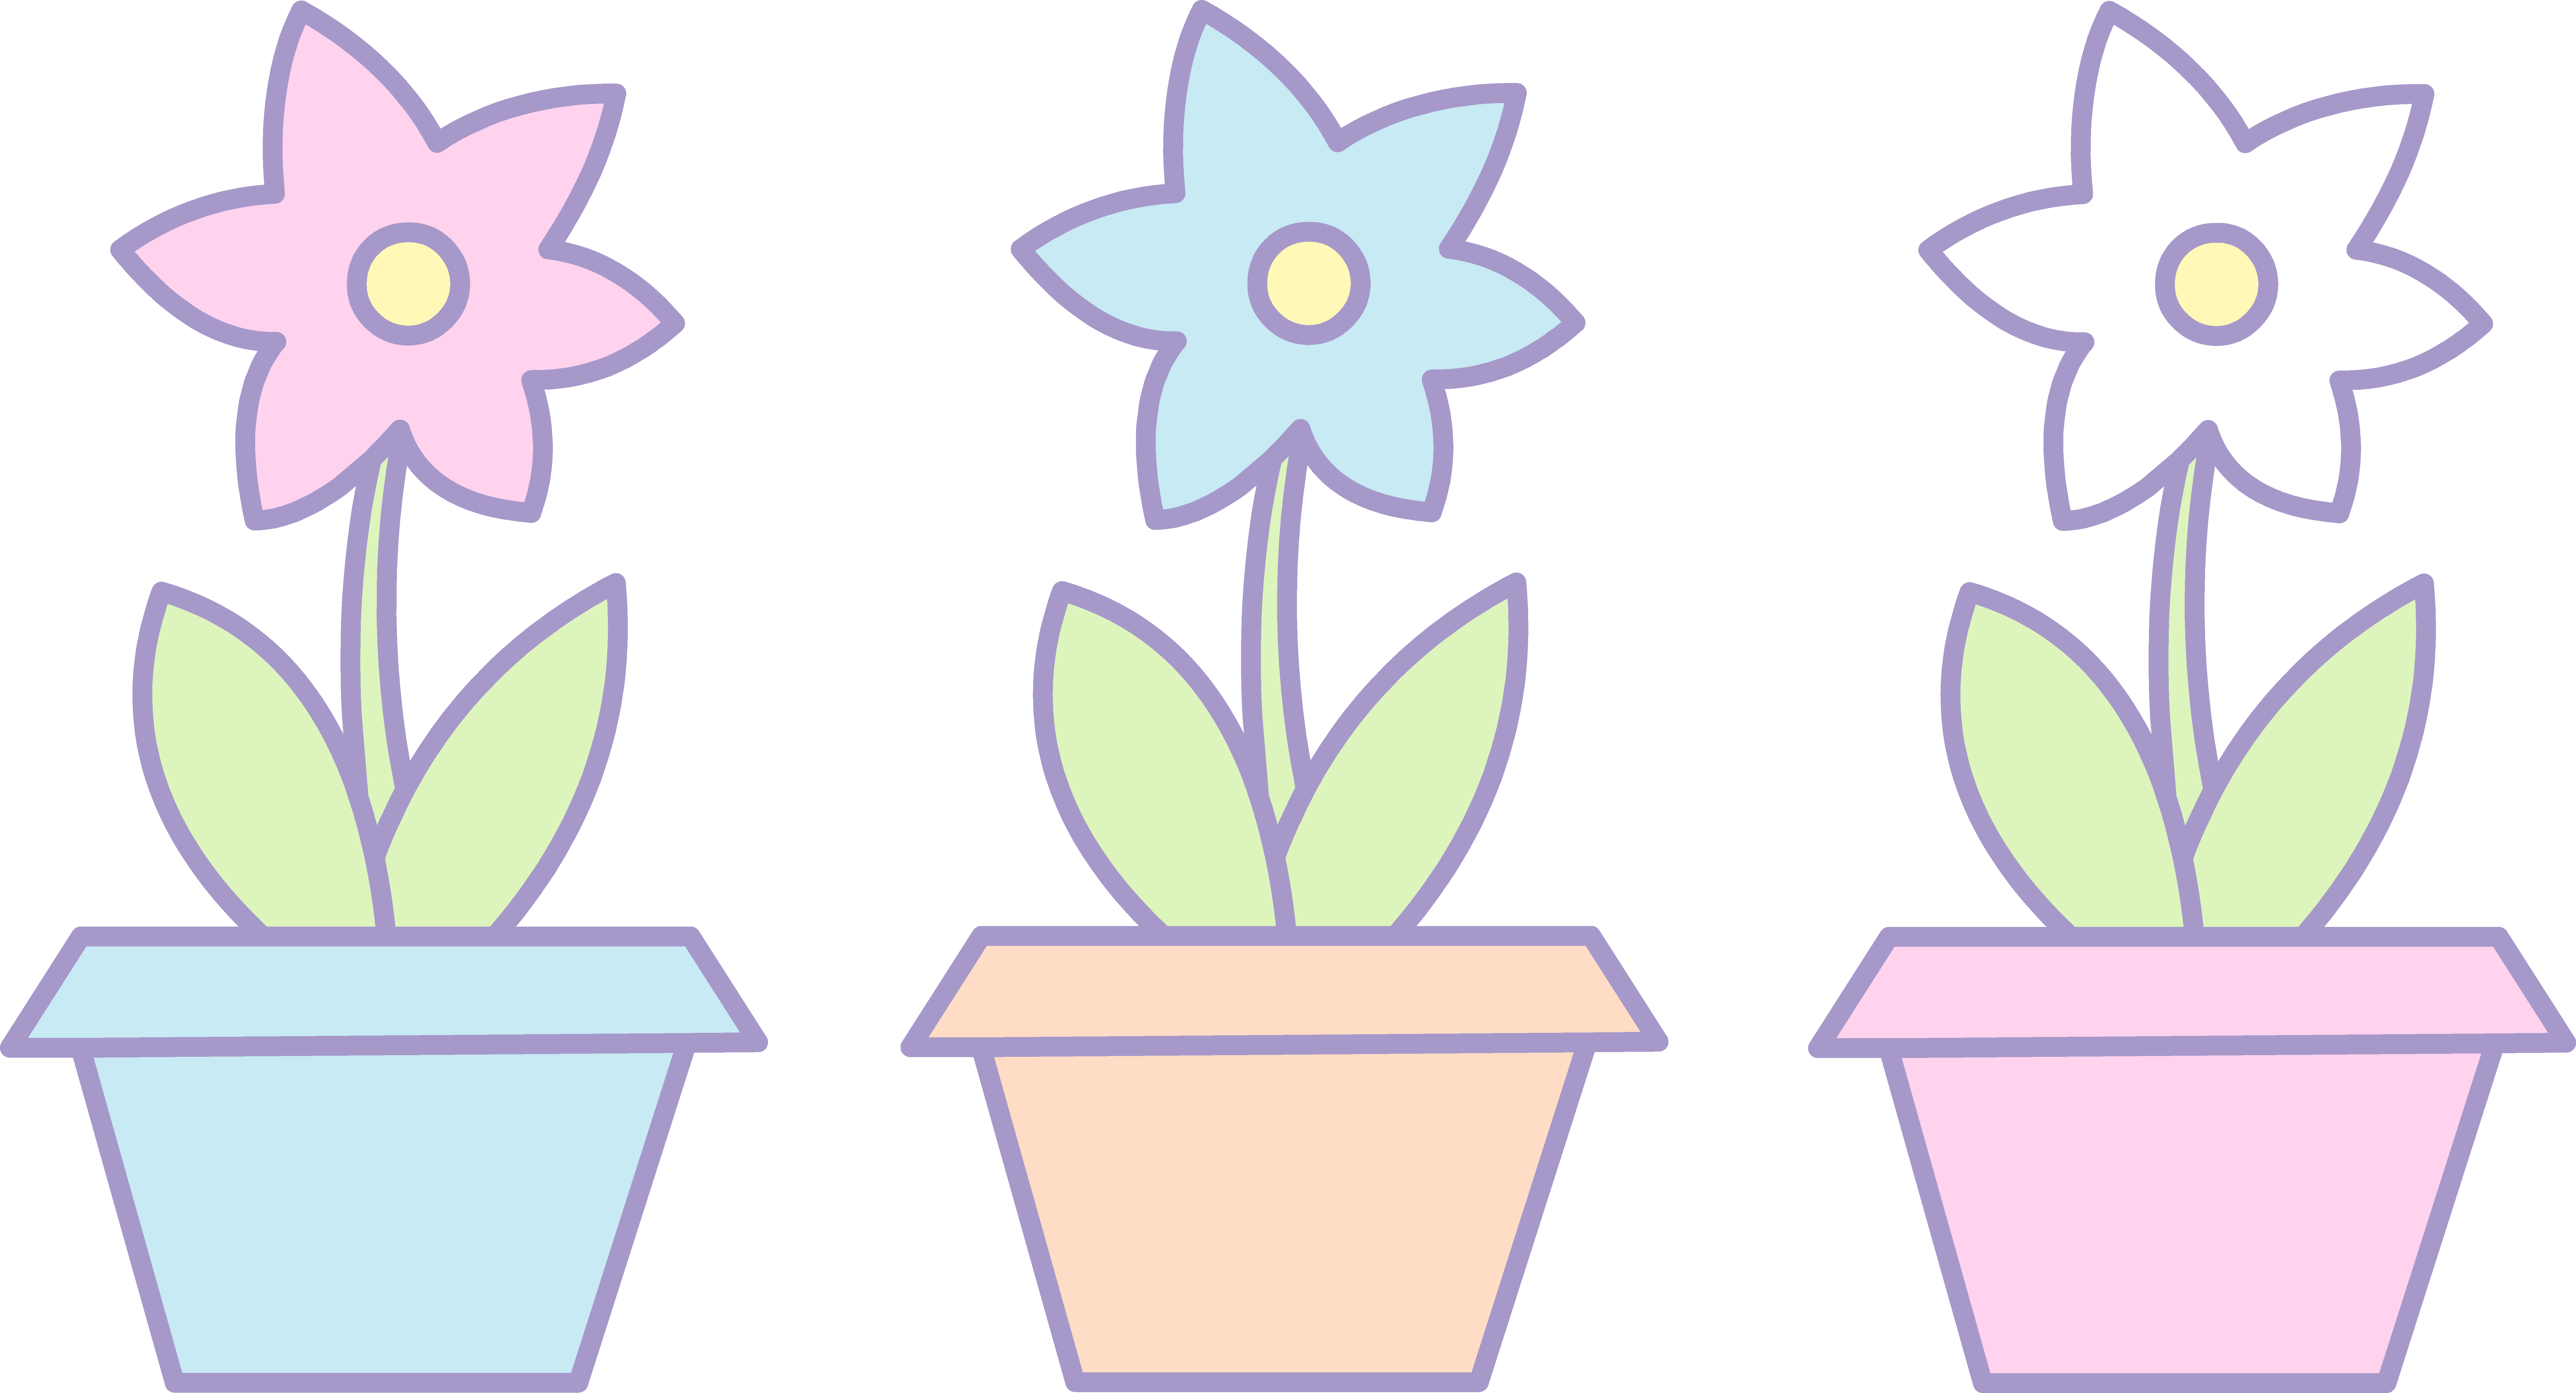 Flower pots clipart. Three cute flowers in